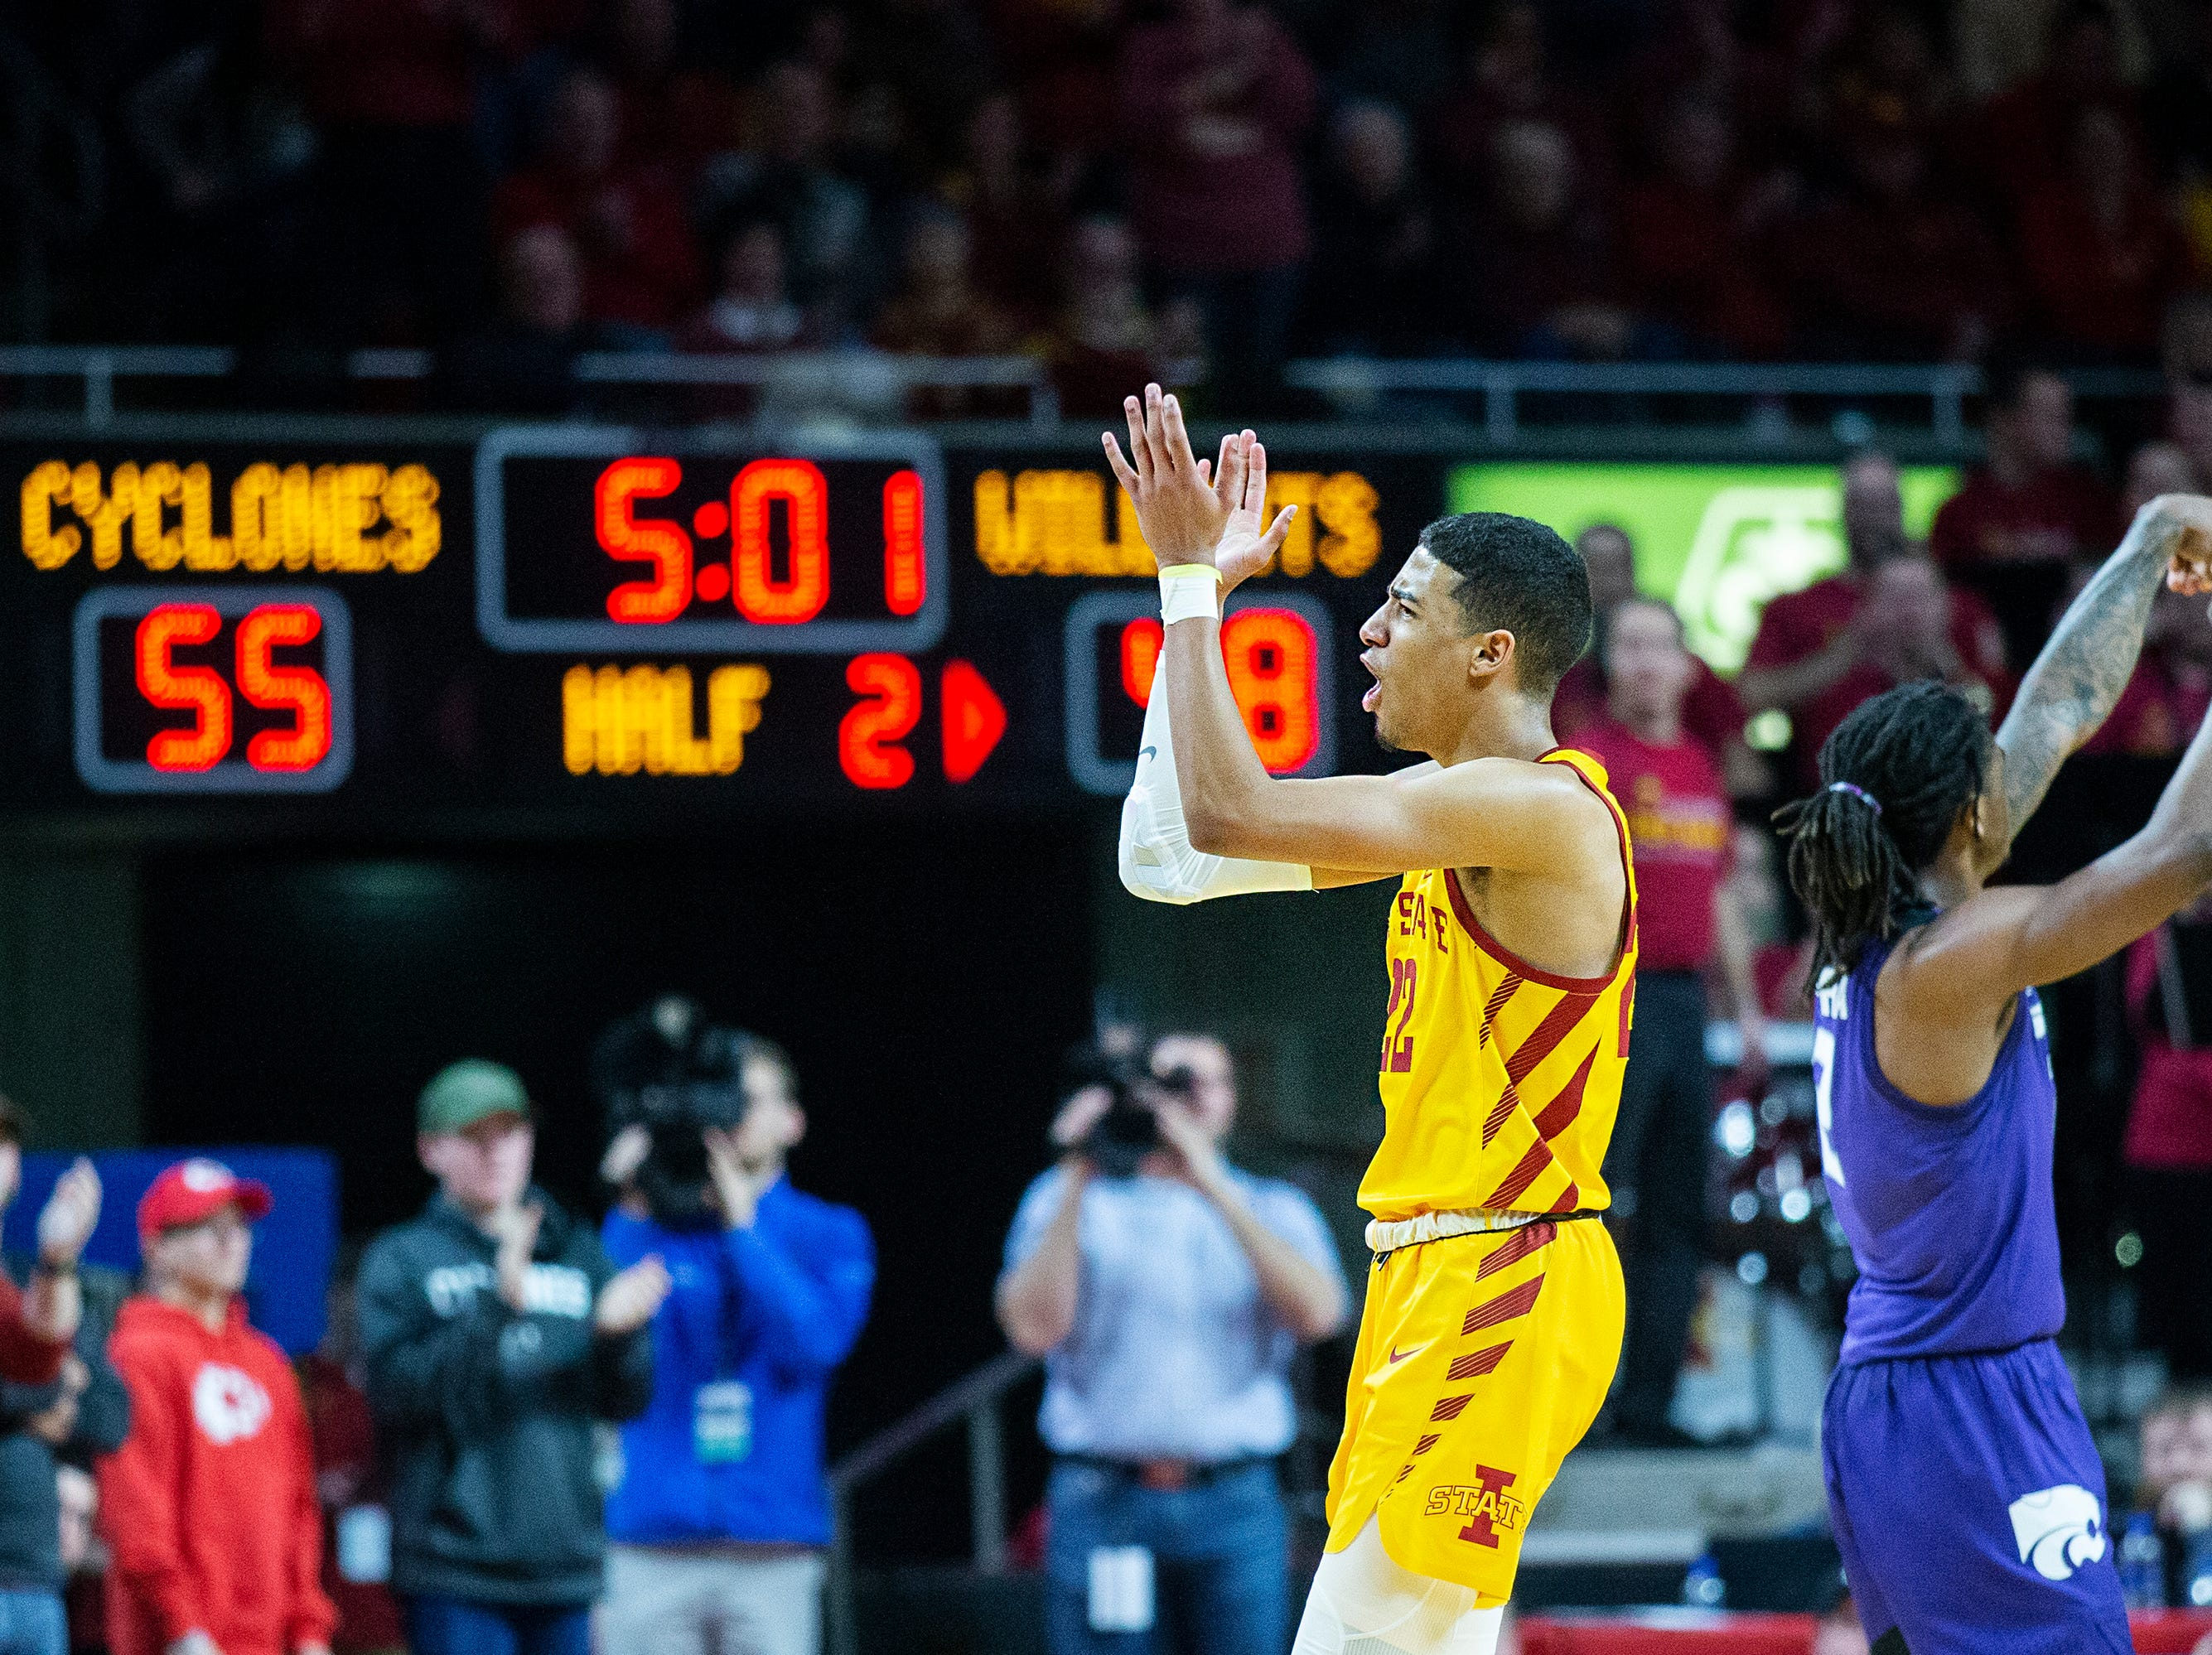 Iowa State's Tyrese Haliburton celebrates after the Cyclones took the lead during the Iowa State men's basketball game against Kansas State on Saturday, Jan. 12, 2019, in Hilton Coliseum. The Cyclones lost to KSU by one point, 58-57.